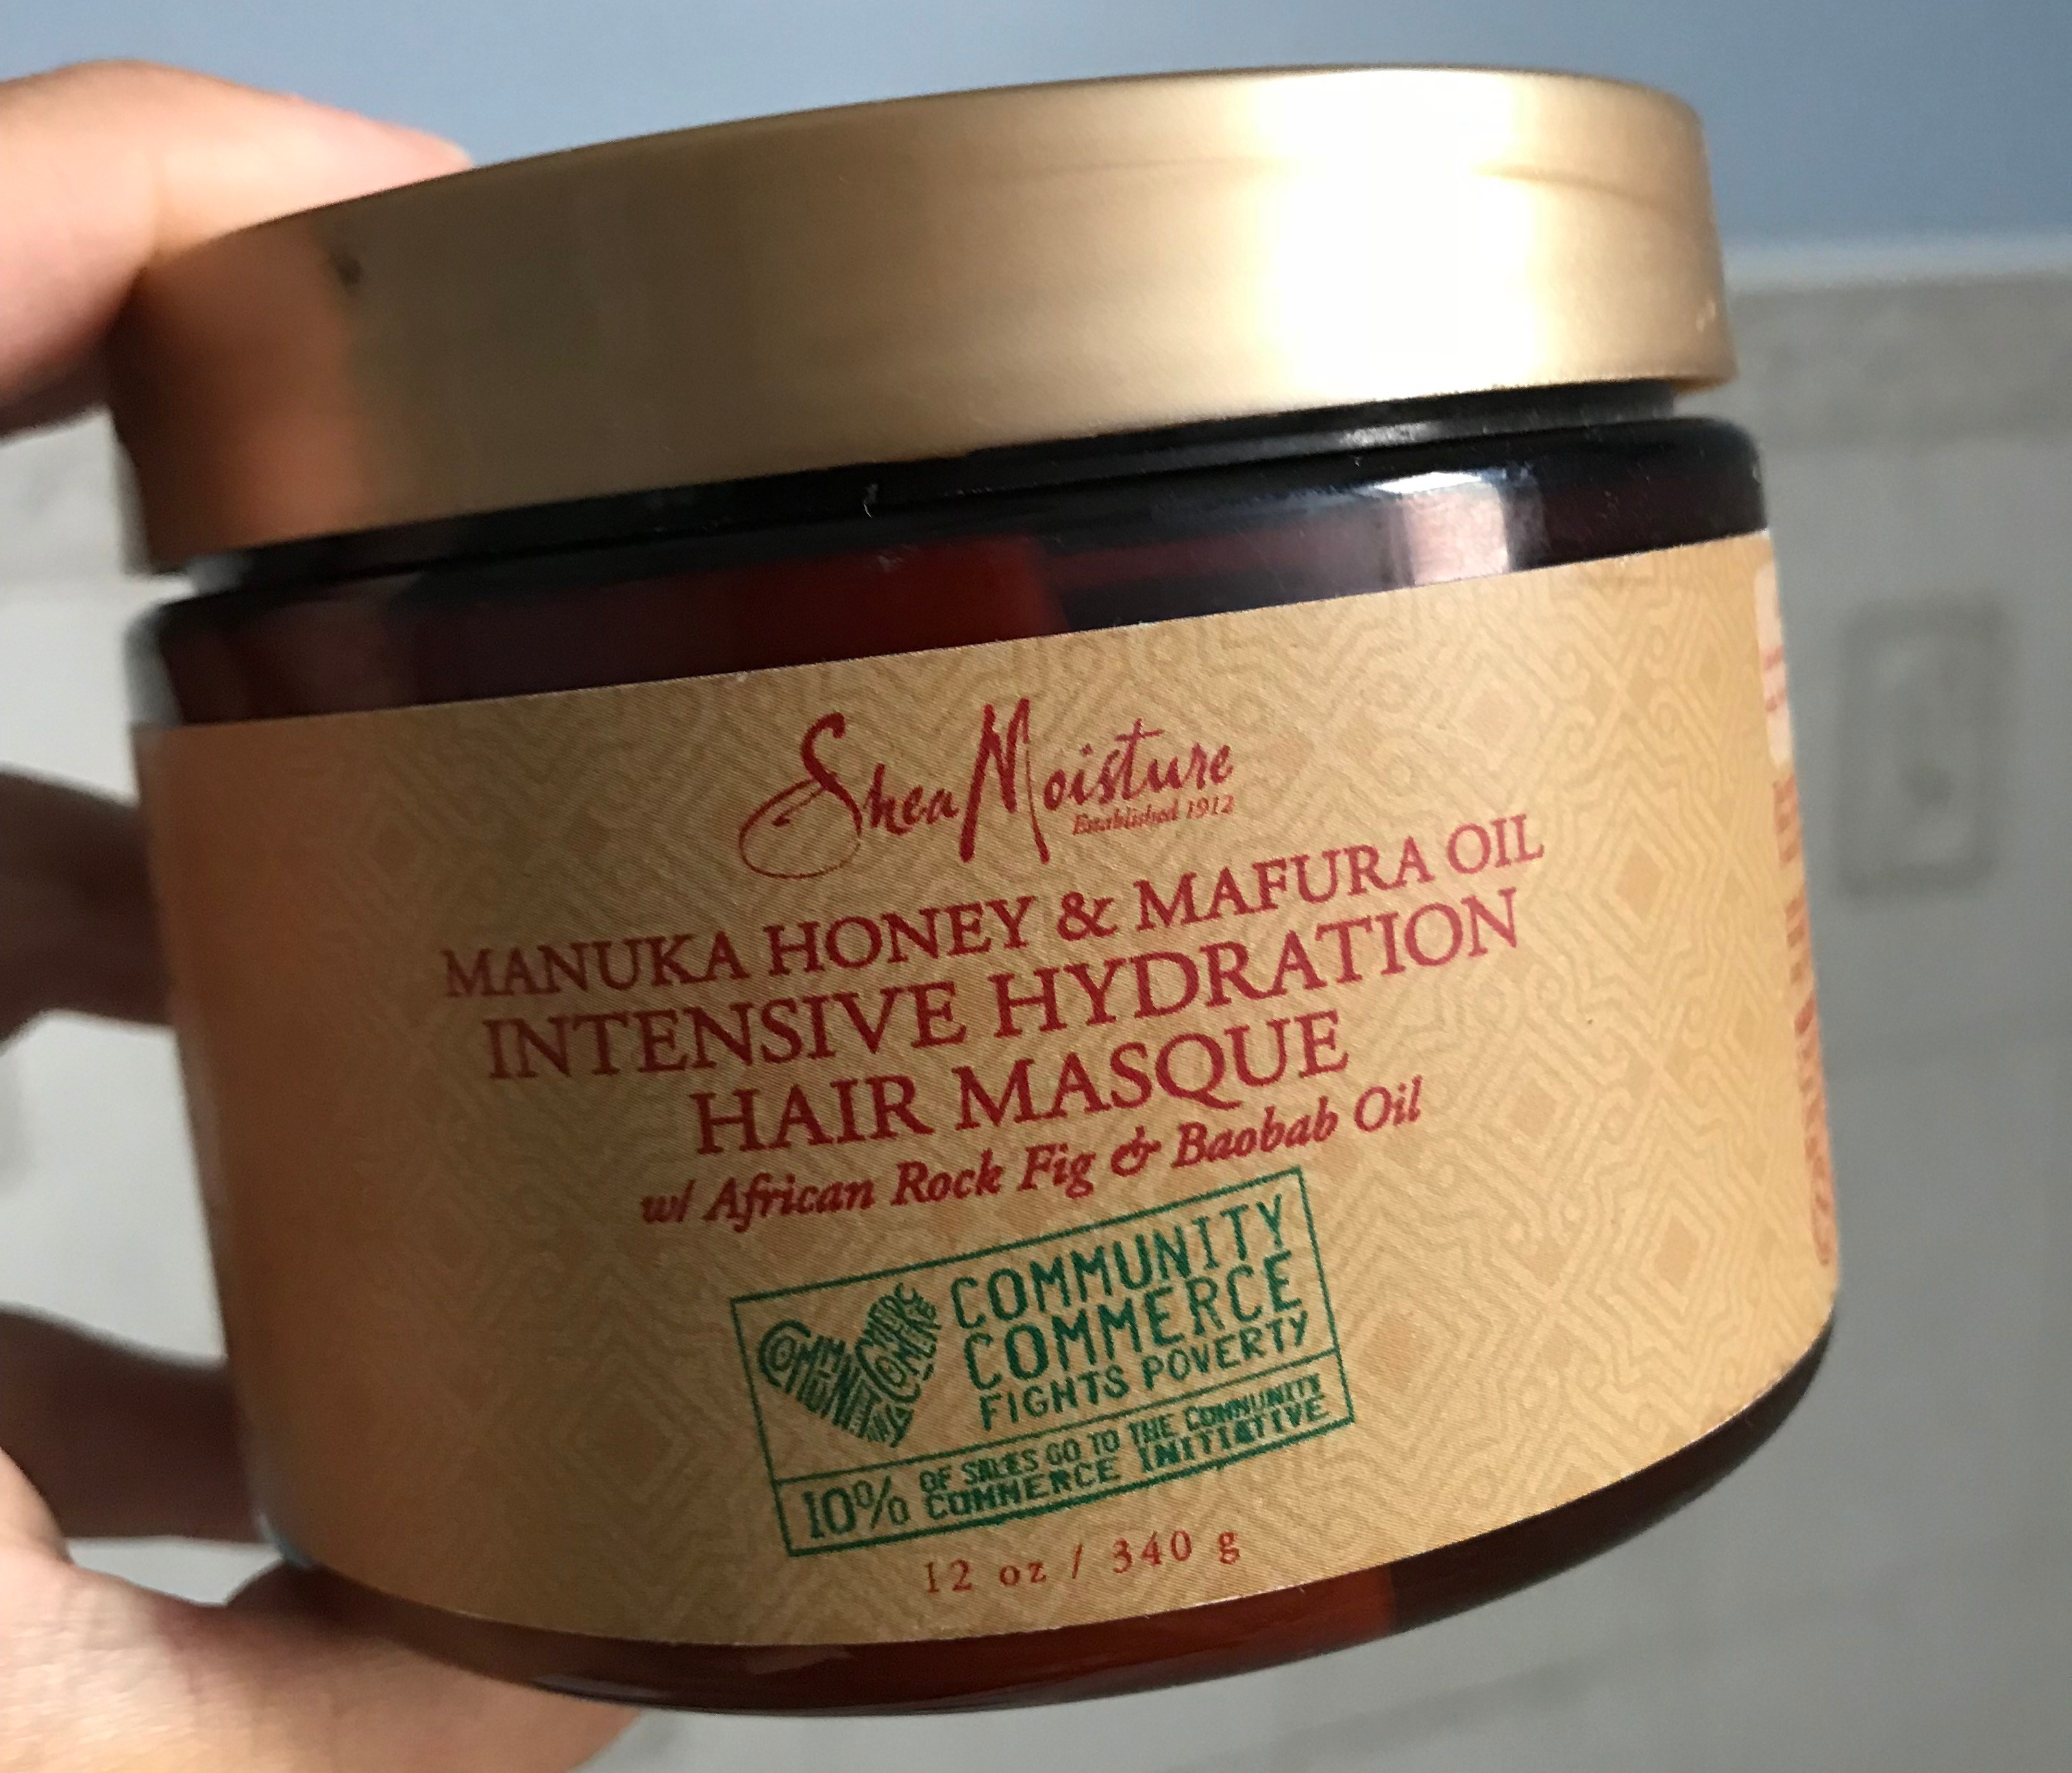 Review of Shea Moisture Manuka Honey and Mafura Oil Intensive Hydration Masque